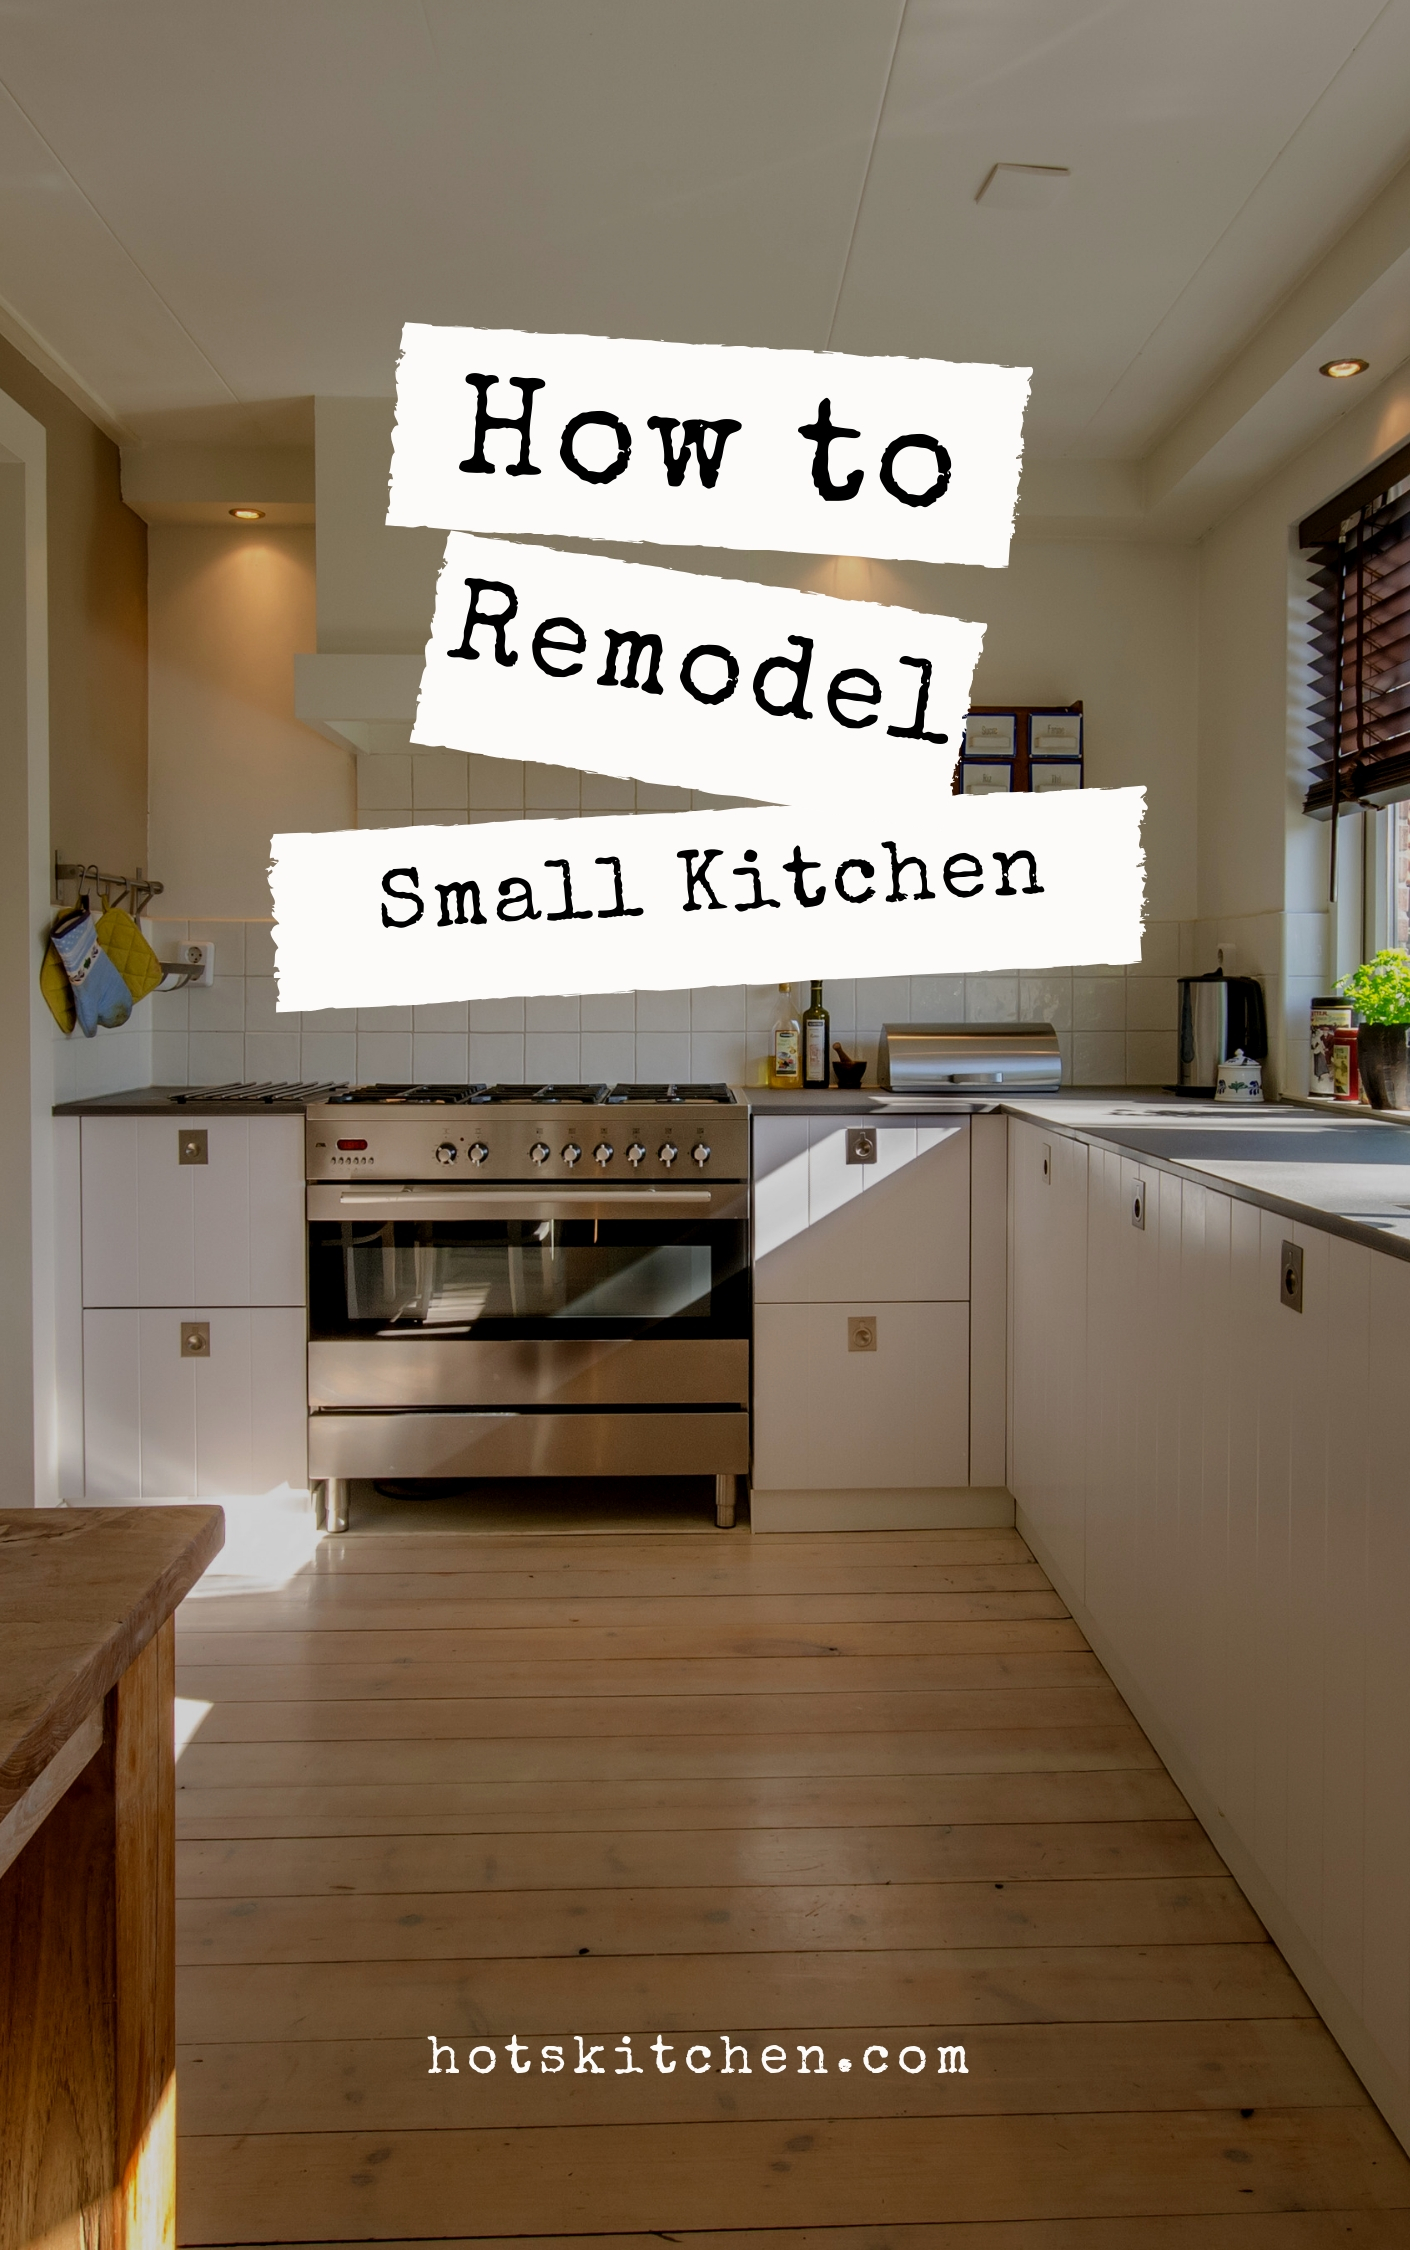 30 Small Kitchen Remodel Ideas Before And After 2019 Trend